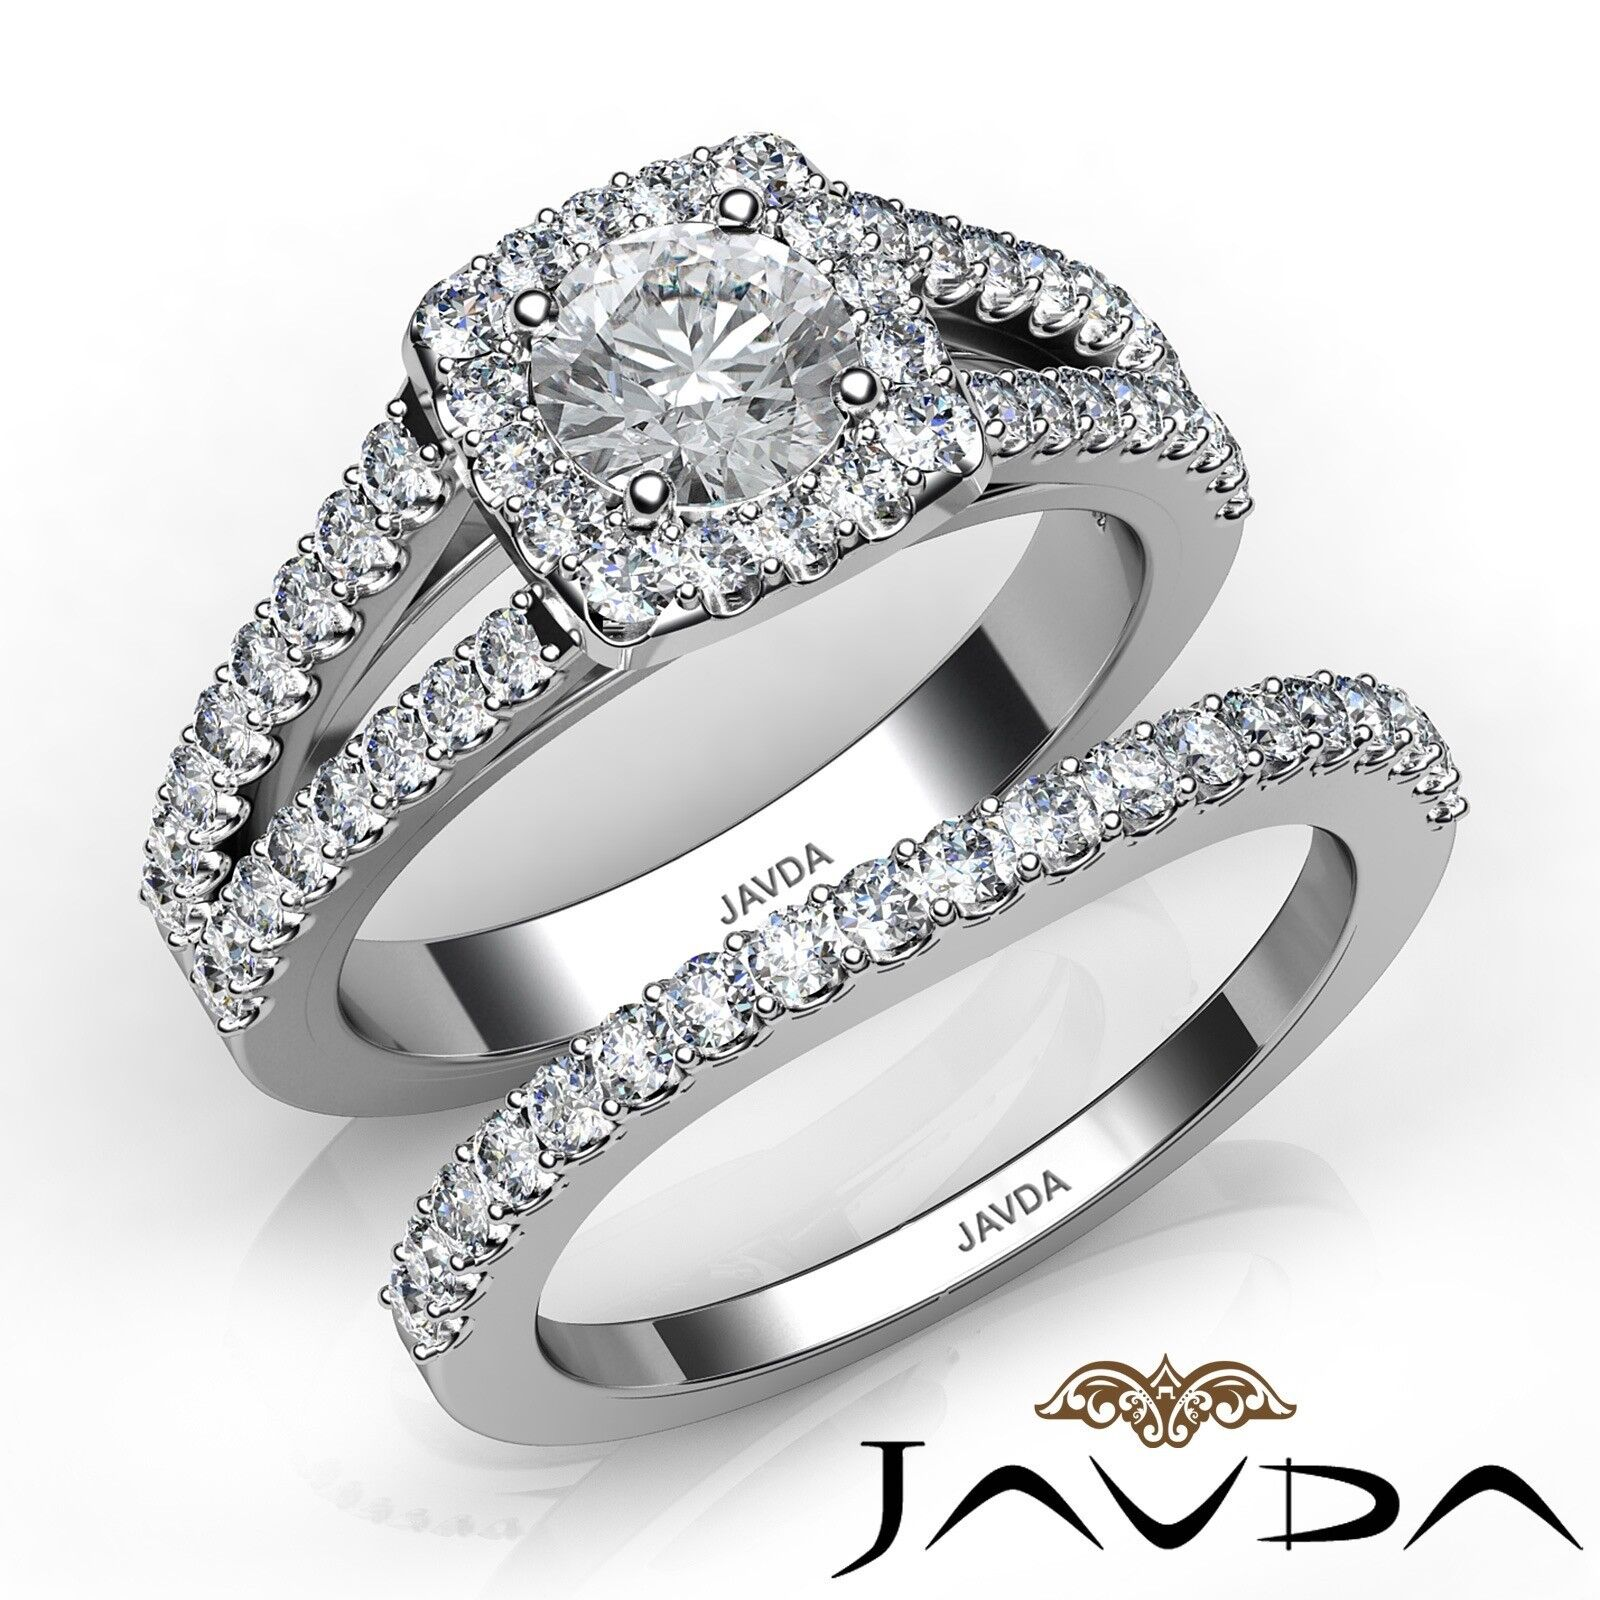 1.71ctw Charming Halo Bridal Set Round Diamond Engagement Ring GIA F-VS2 W Gold